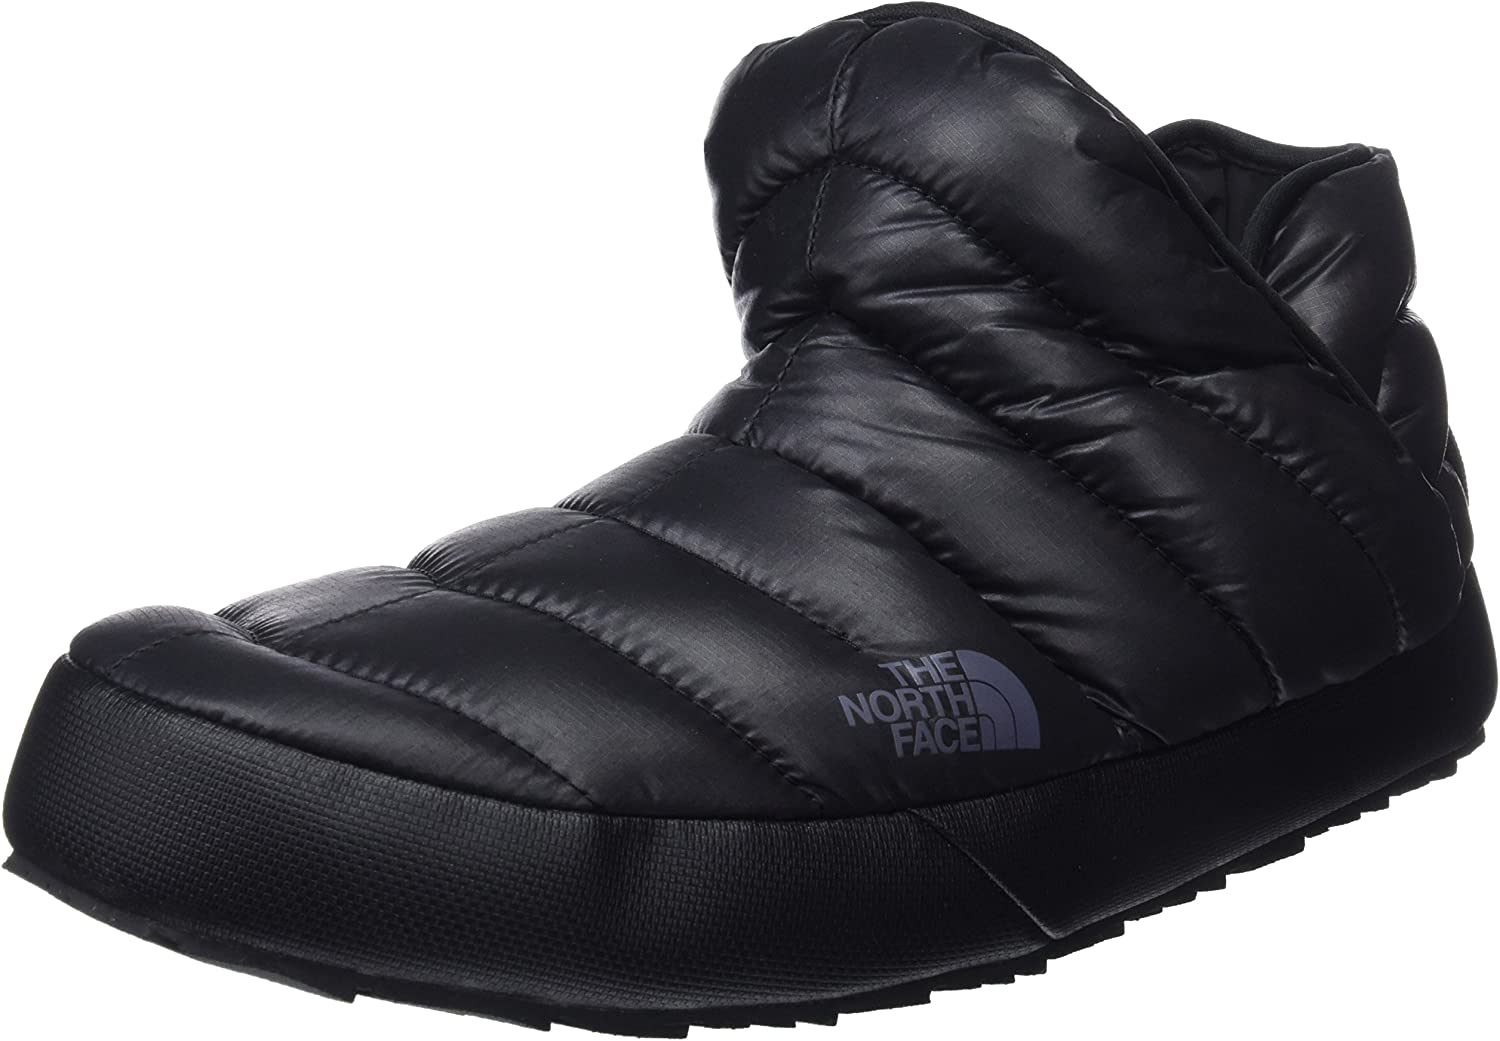 THE NORTH FACE Thermoball Traction Bootie Mens